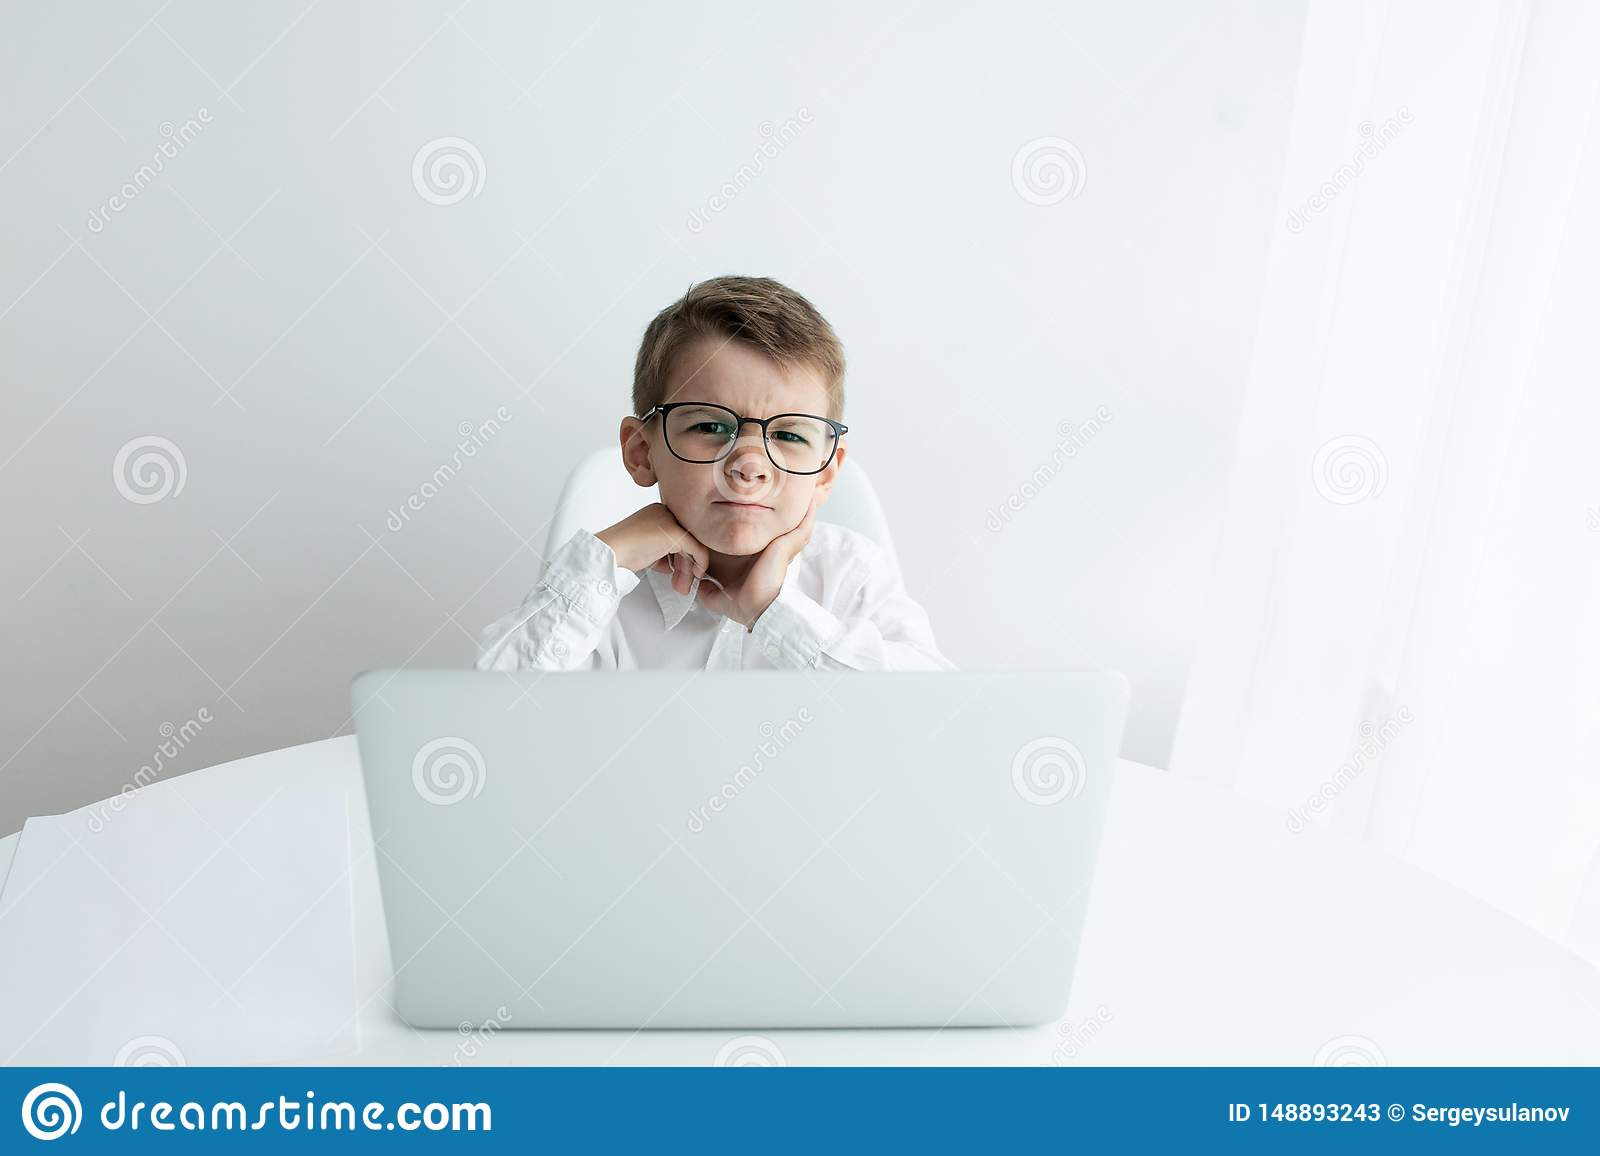 Cute little boy using laptop while doing homework against white background